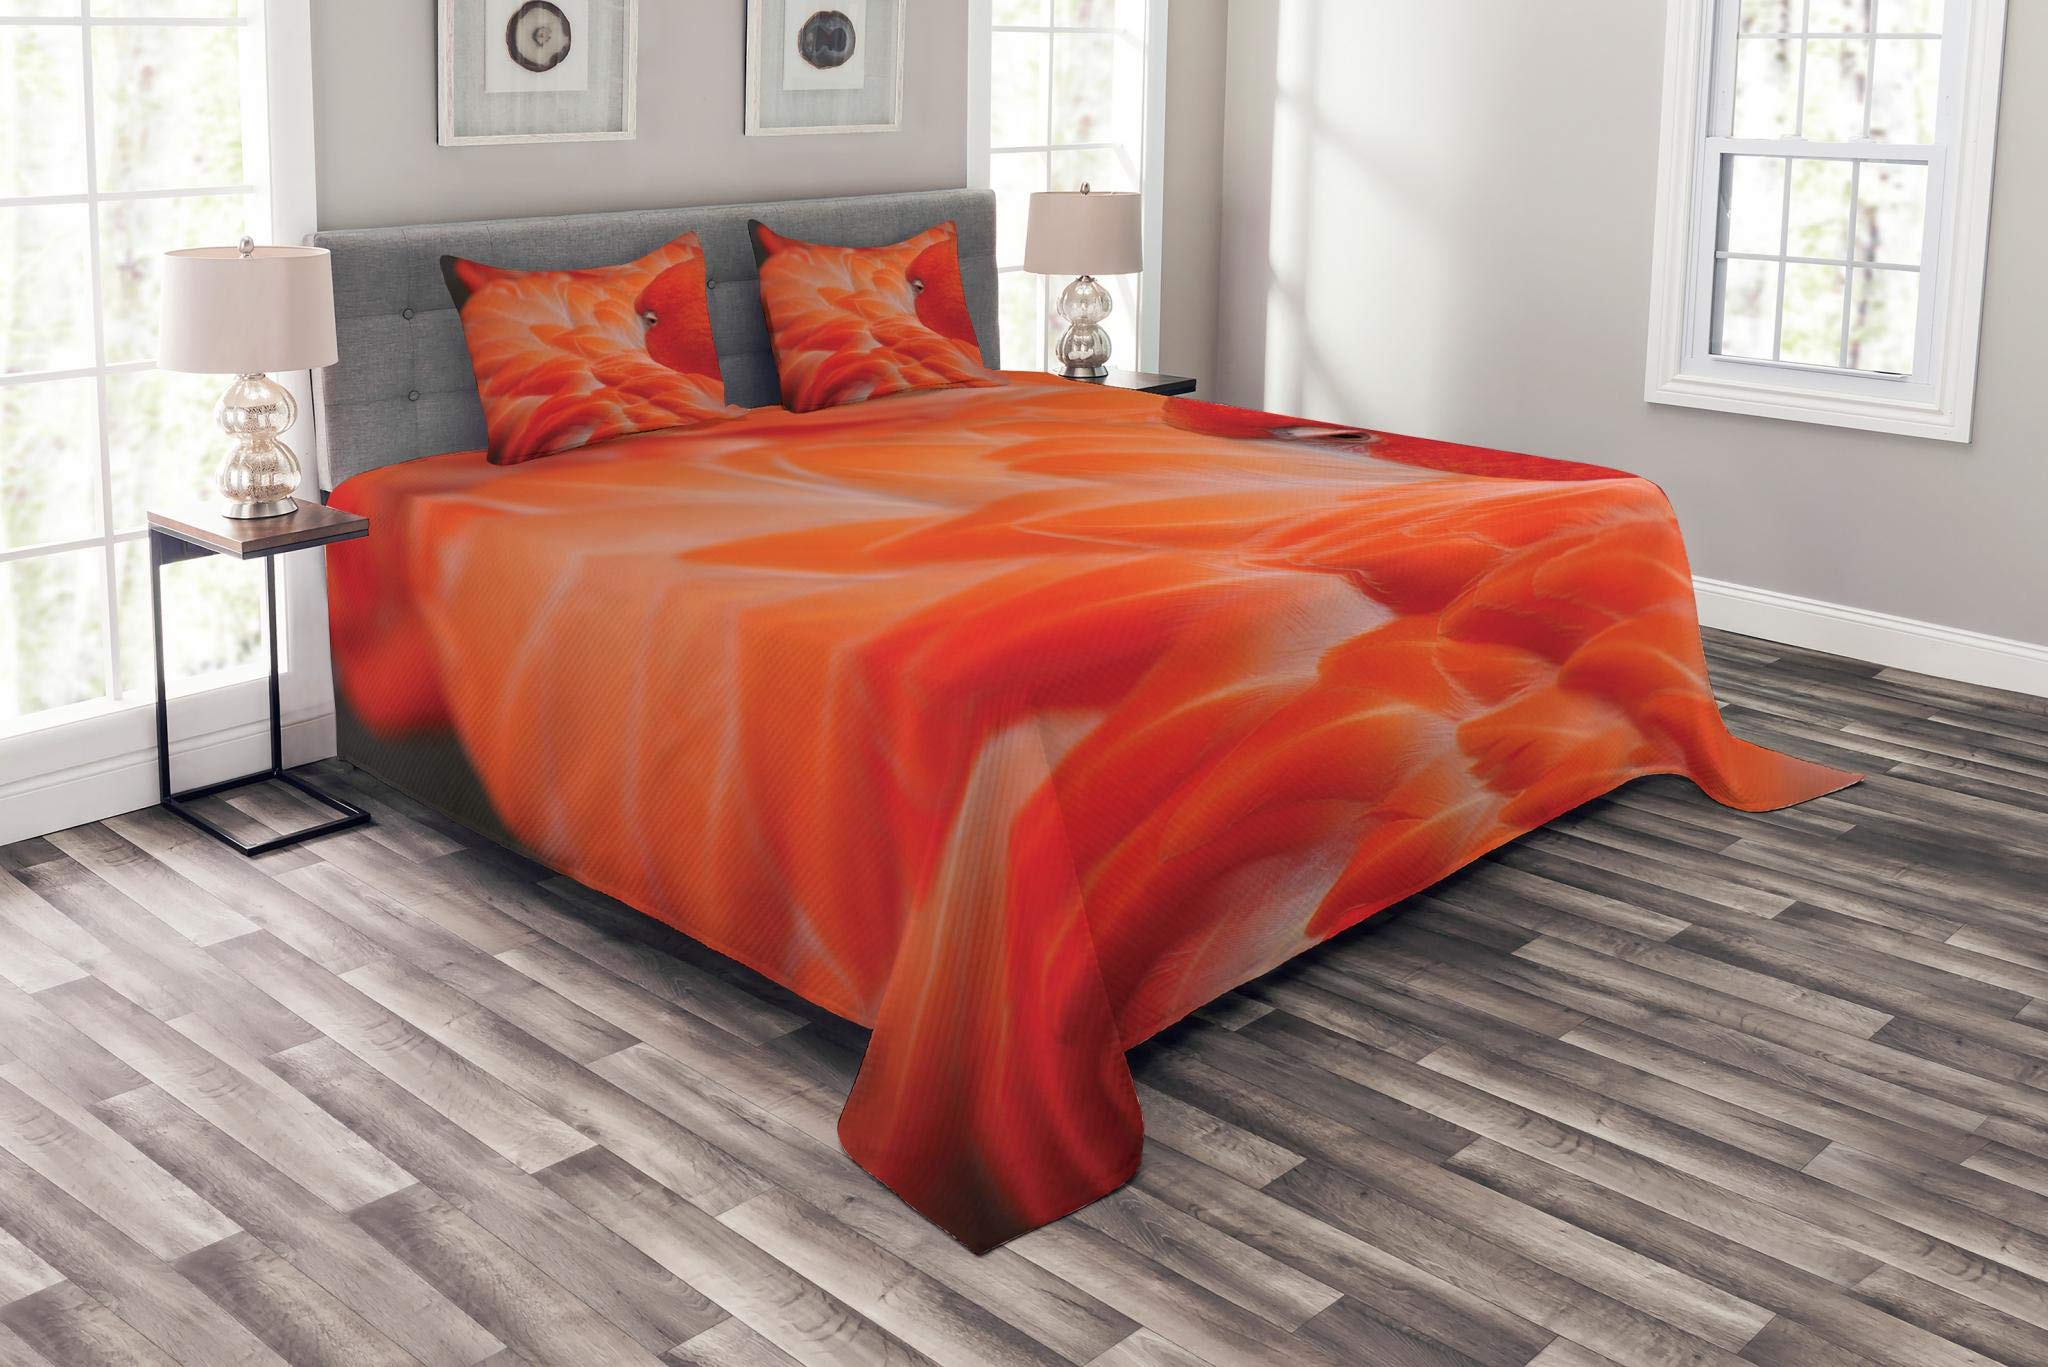 Lunarable Flamingo Bedspread Set King Size, Flamingo Feathers Fuzzy Waterbird Graceful Animal Closeup Wildlife Scenic Picture, Decorative Quilted 3 Piece Coverlet Set with 2 Pillow Shams, Orange